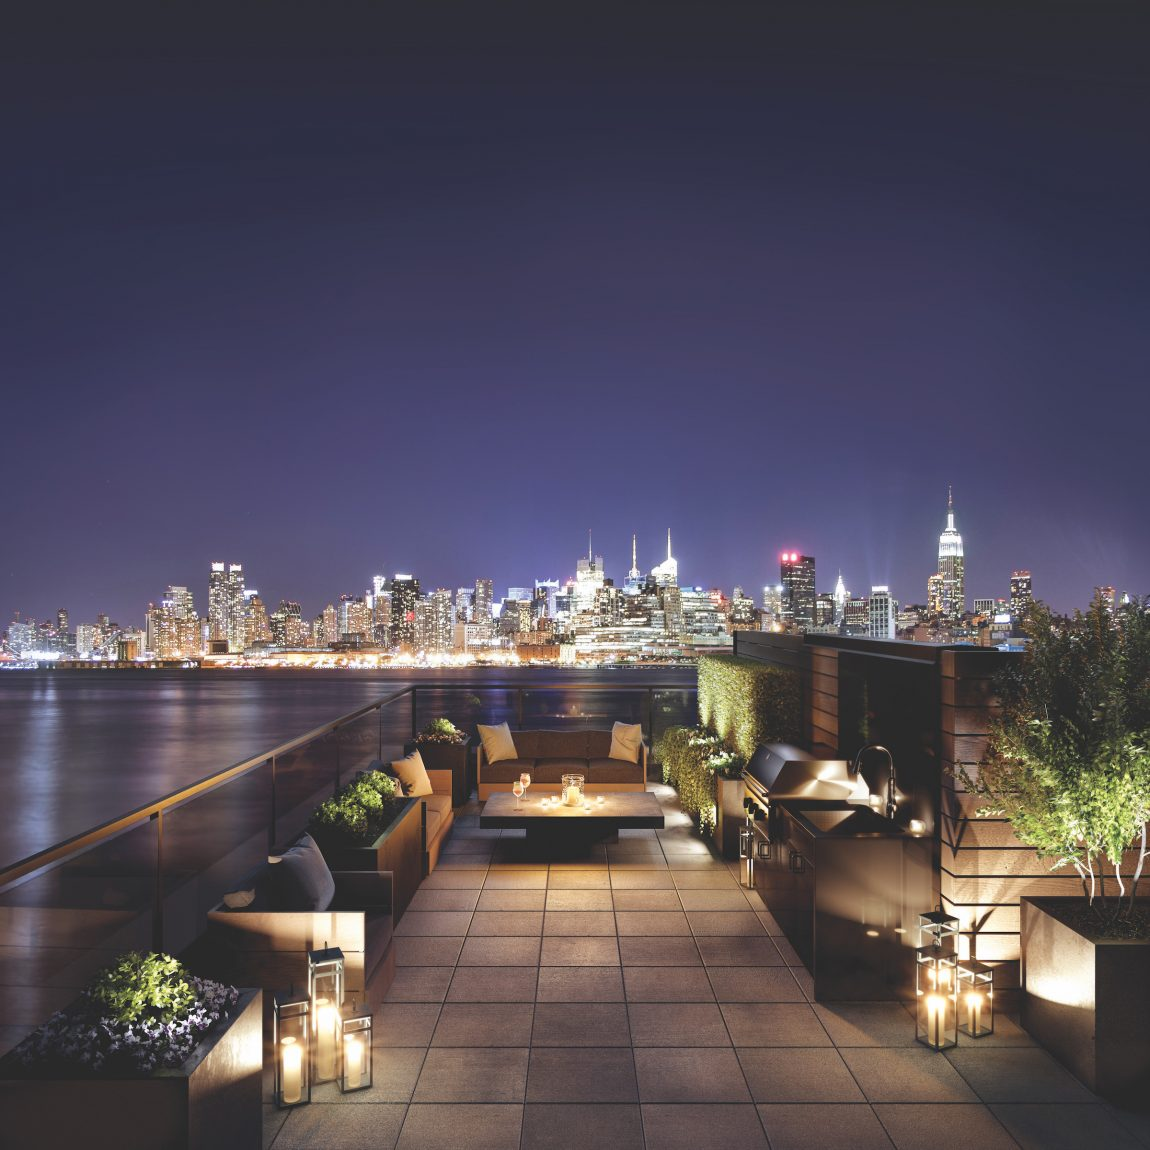 A patio with a fire pit overlooking New York City at night from across the river.